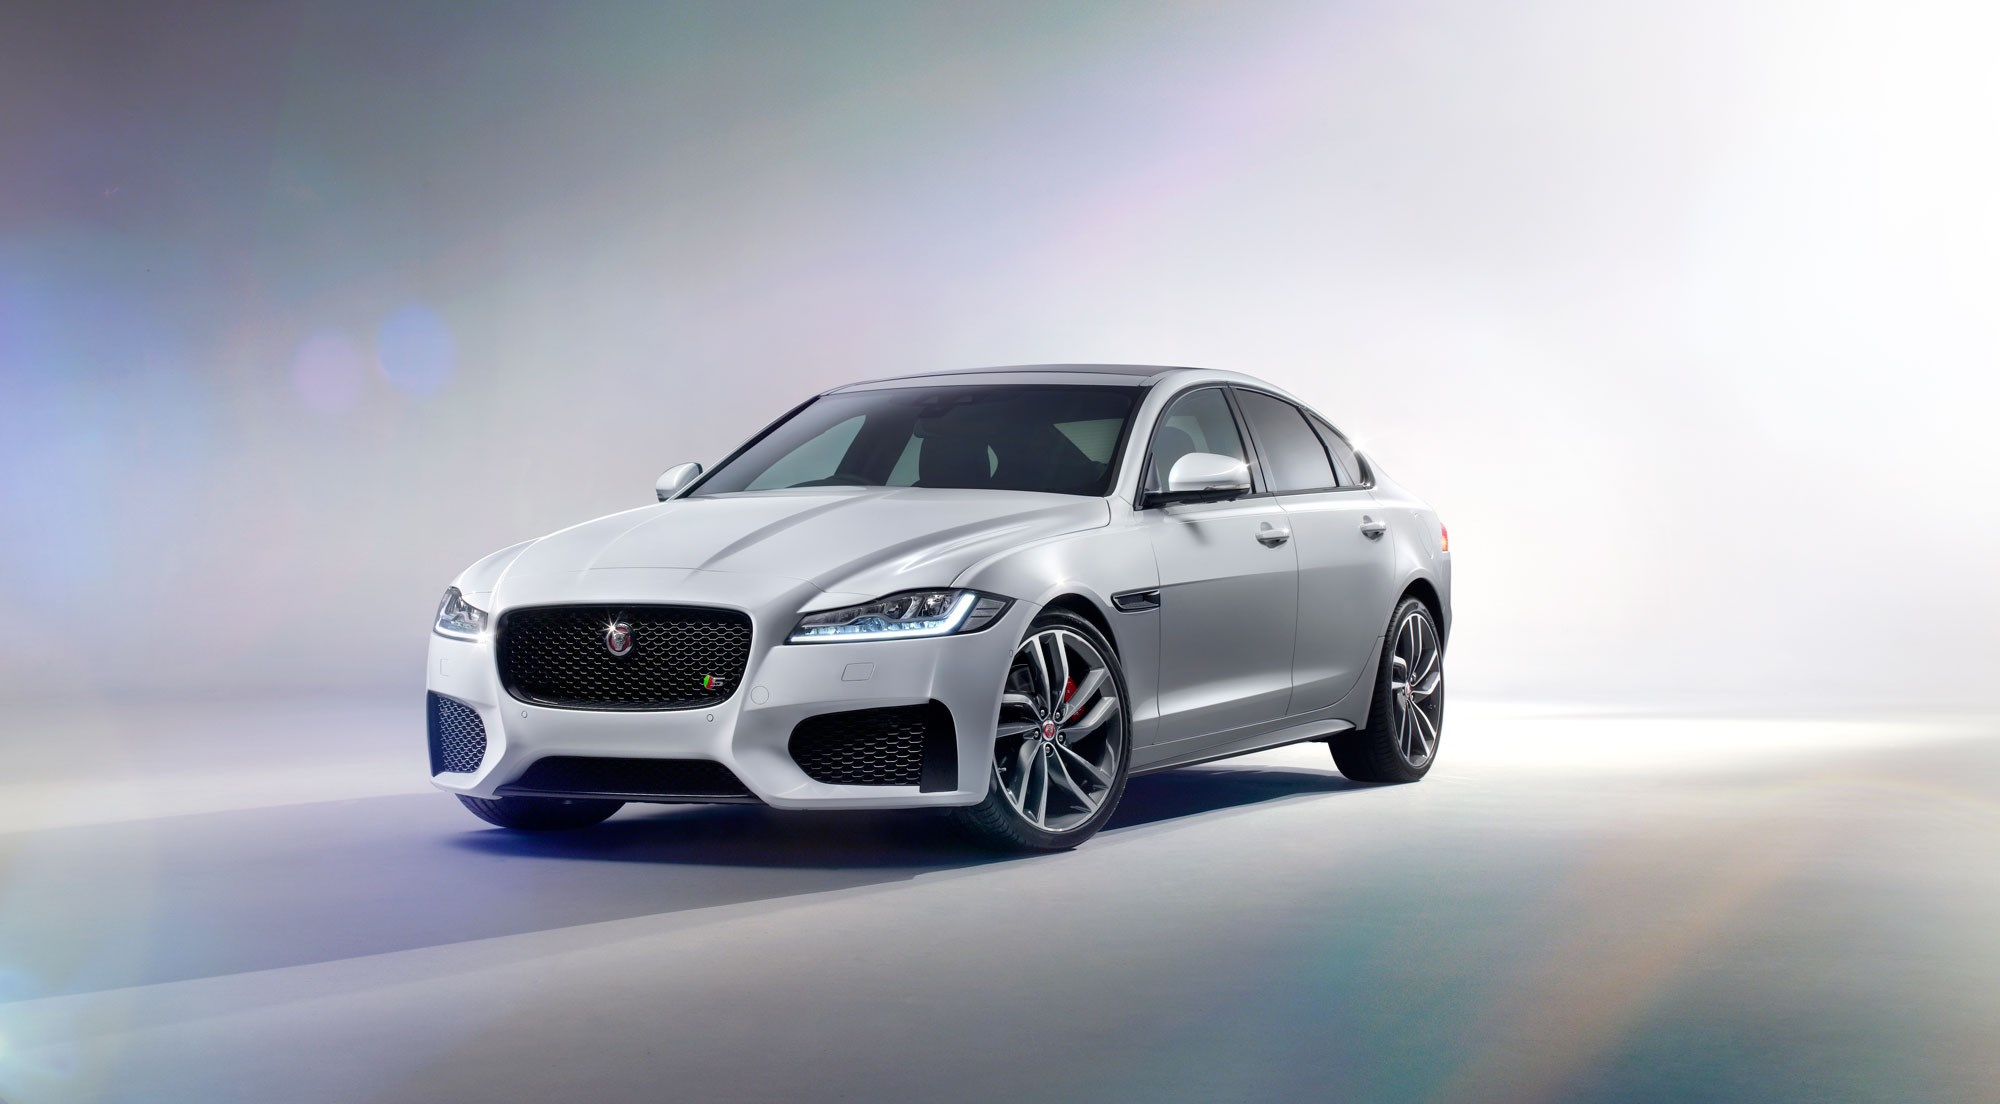 Jaguar Cars News New Jaguar Xf 2015 Revealed Honey I Inflated The Xe By